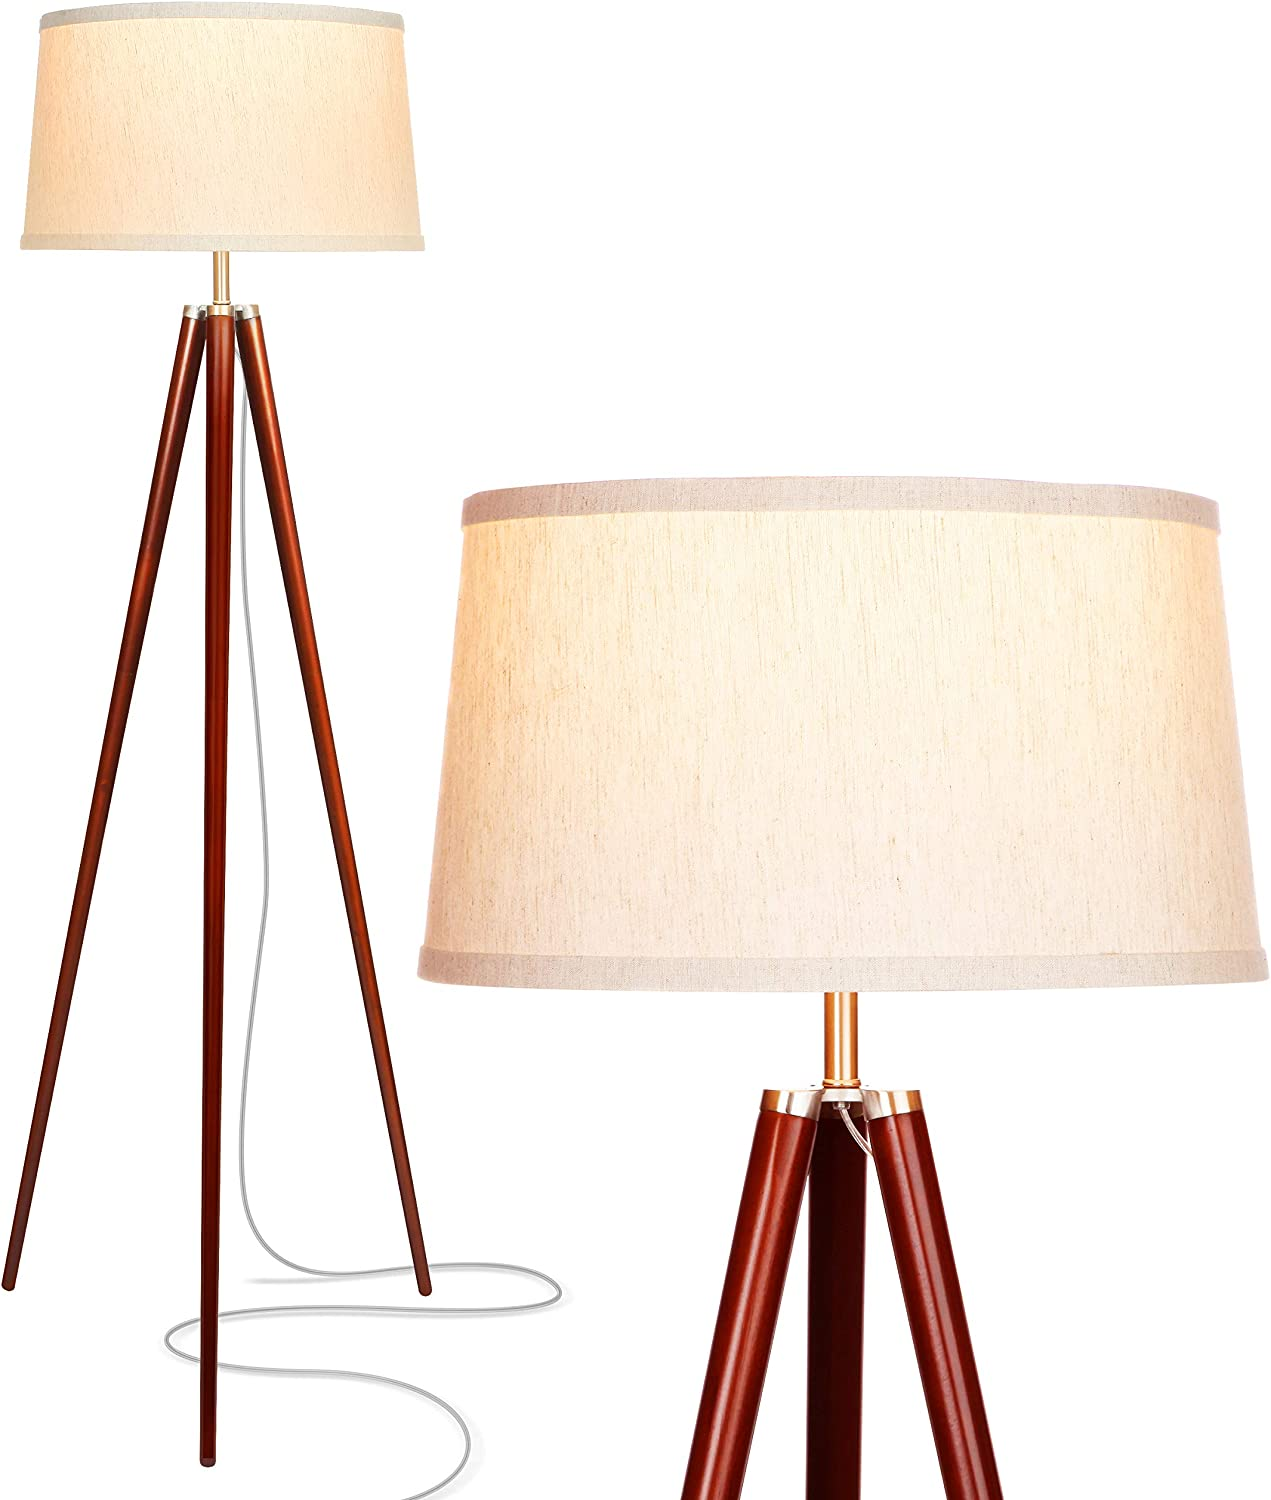 Brightech Emma LED Tripod Floor Lamp Mid Century Modern Standing Light for Contemporary Living Rooms – Tall Survey Lamp with Wood Legs for Bedroom, Office – Walnut Brown